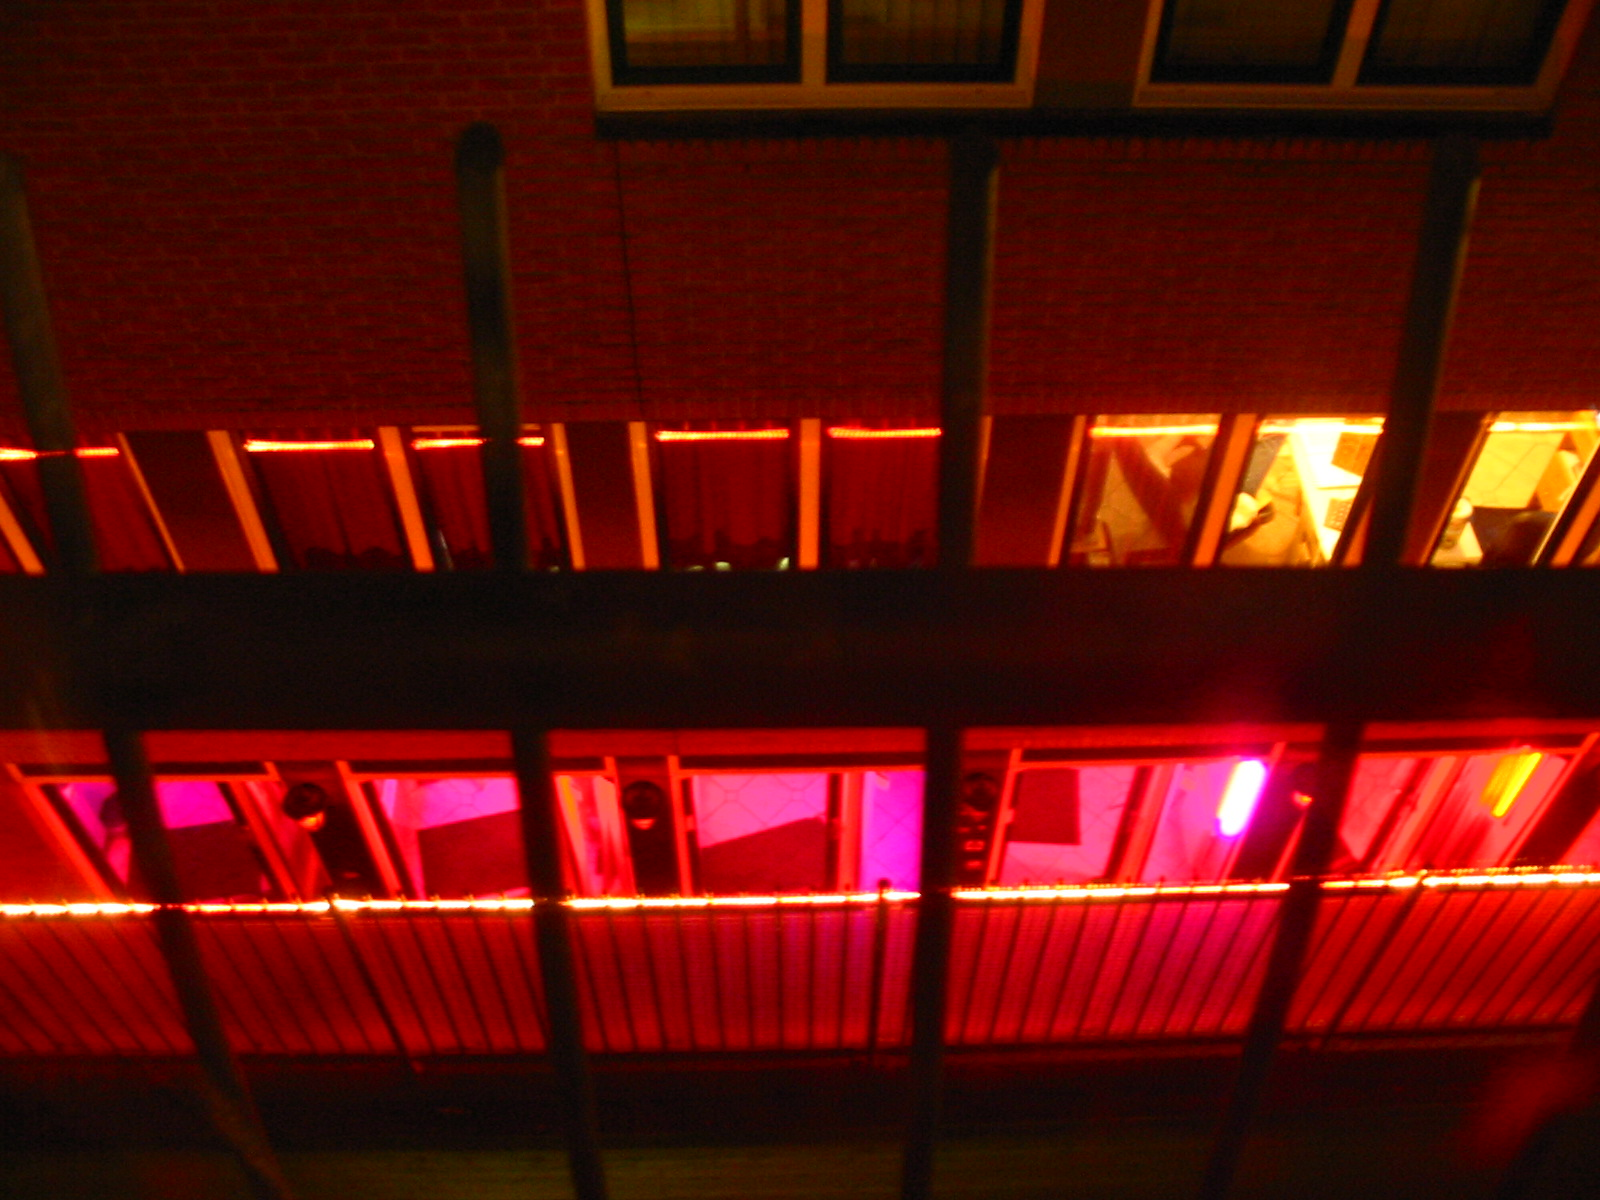 http://upload.wikimedia.org/wikipedia/commons/8/8a/Red_Light_District.jpg